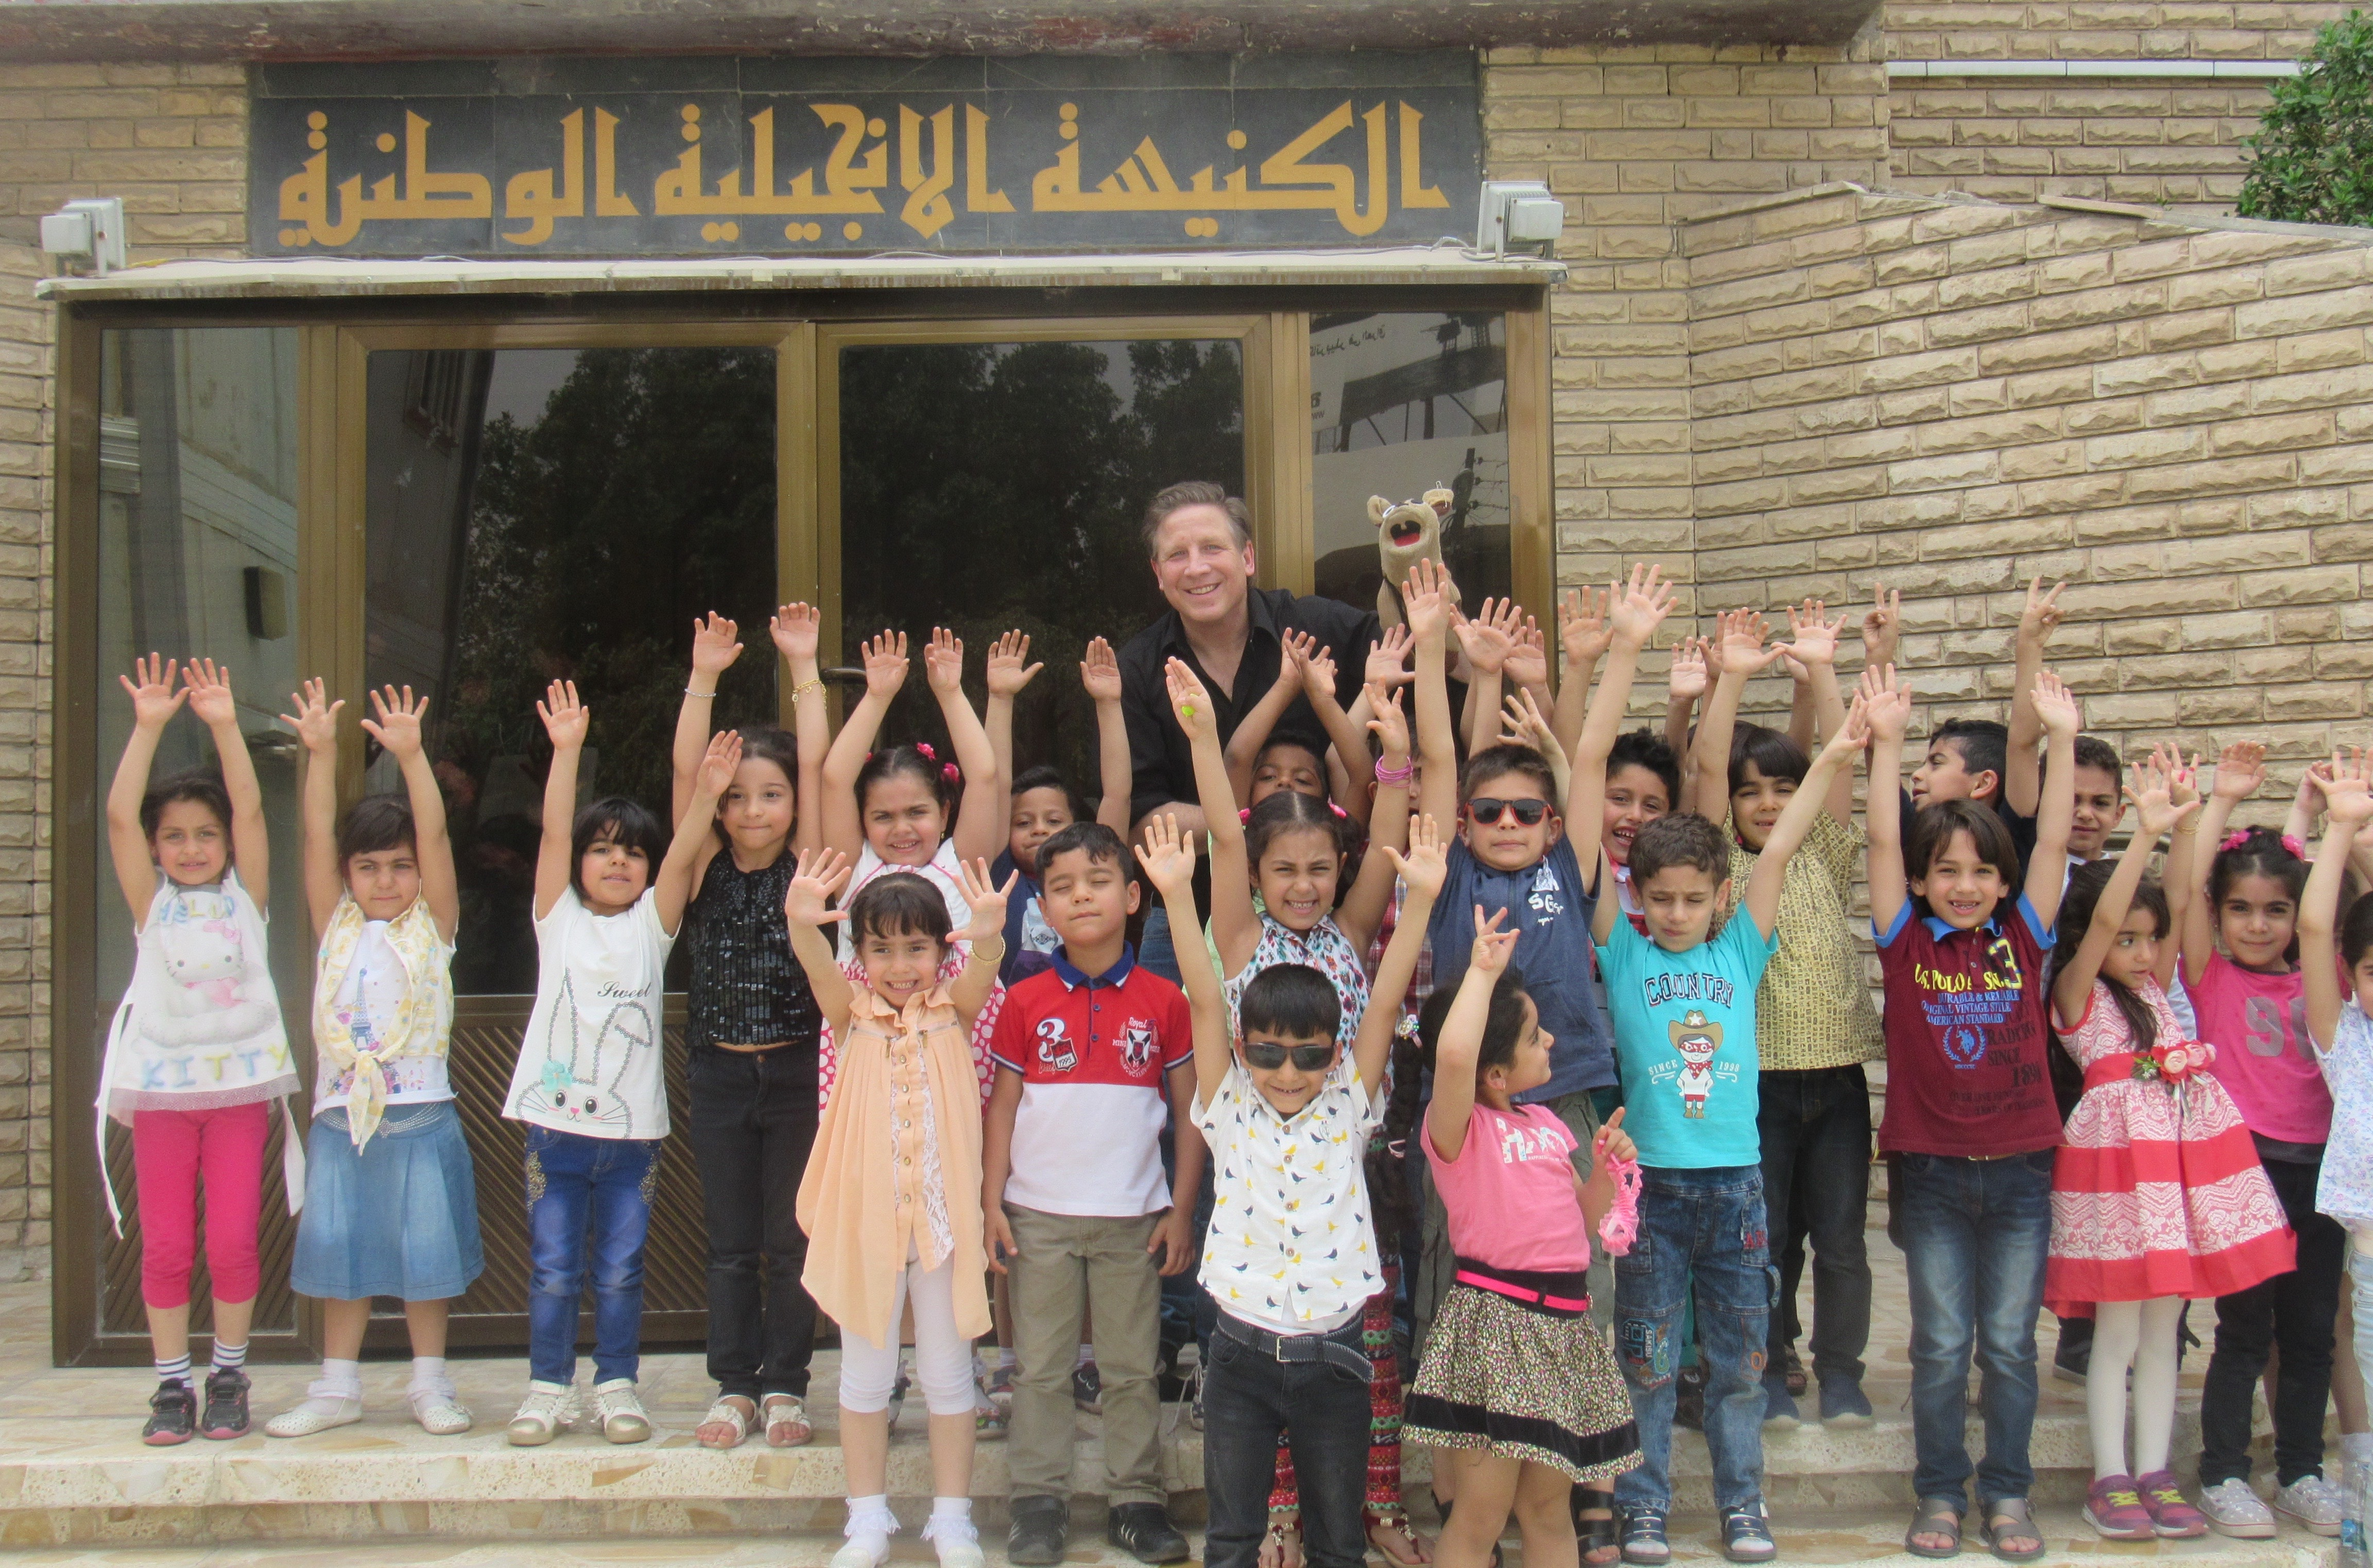 Kids at the kindergarten in Basrah, Iraq, reaching for the stars. (Photo by Scott Parker)